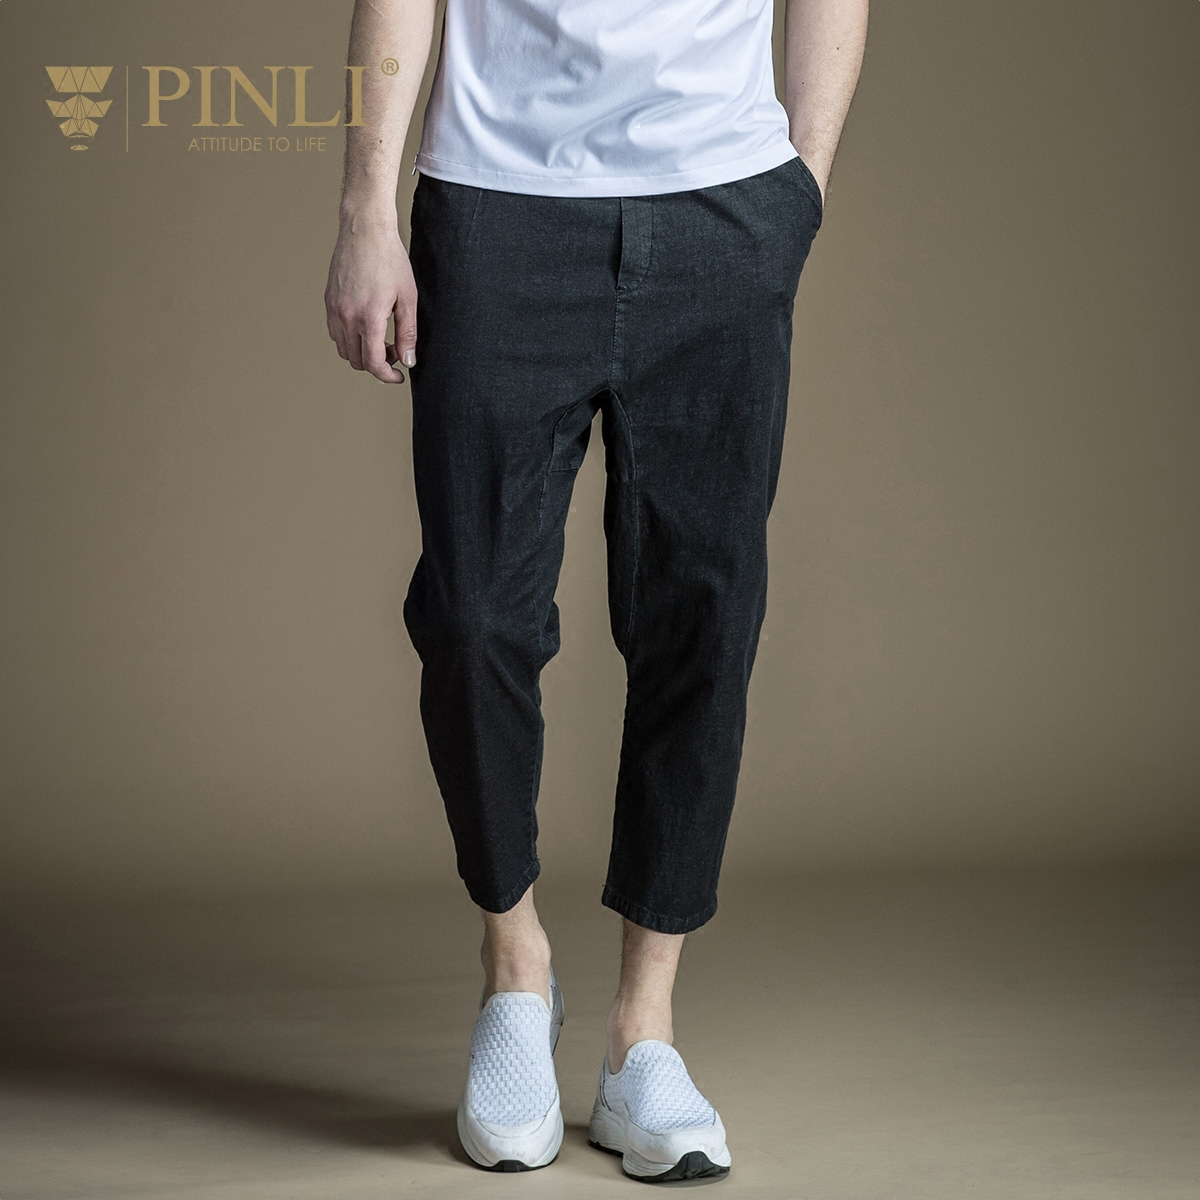 Pinli Promotion Acetate Knee Length Midweight Pencil Pants Mid Product 2017 New Summer Men s Quality